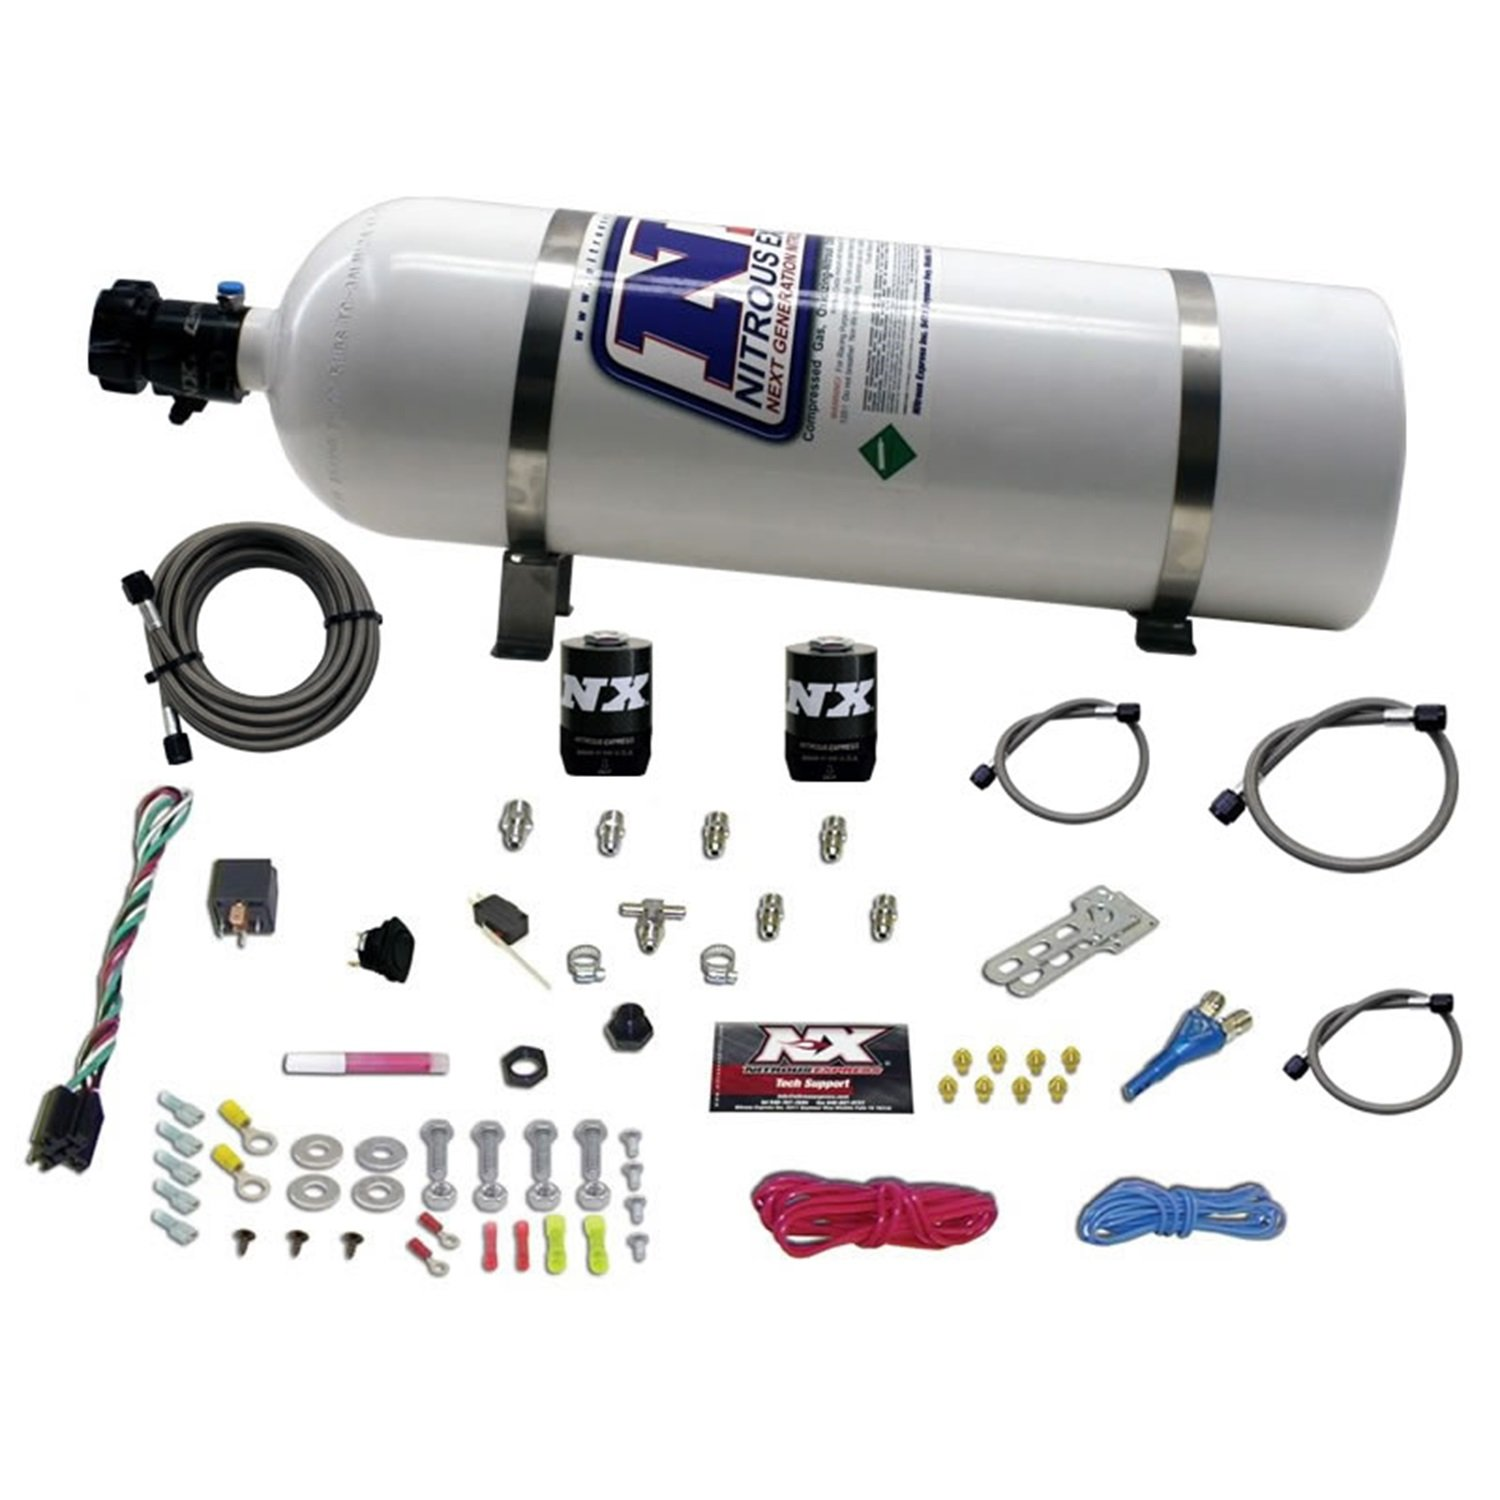 Nitrous Express 20923-15 35-75 HP Sport Compact EFI Single Nozzle System with 15 lbs. Bottle by Nitrous Express